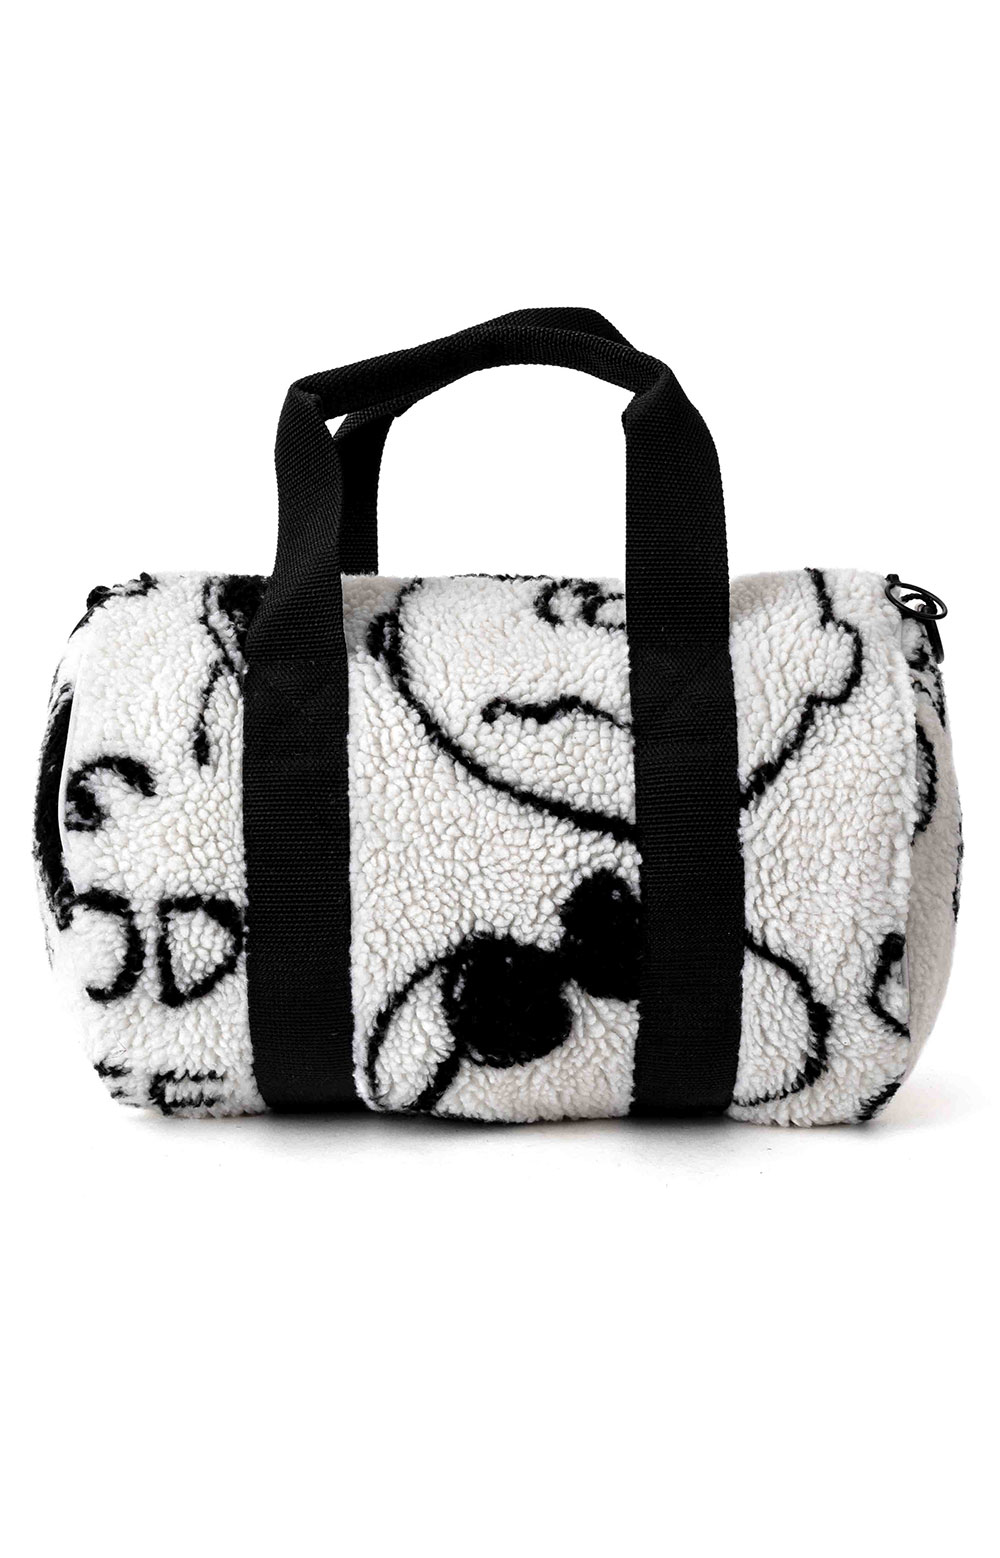 Good Grief Fleece Bag